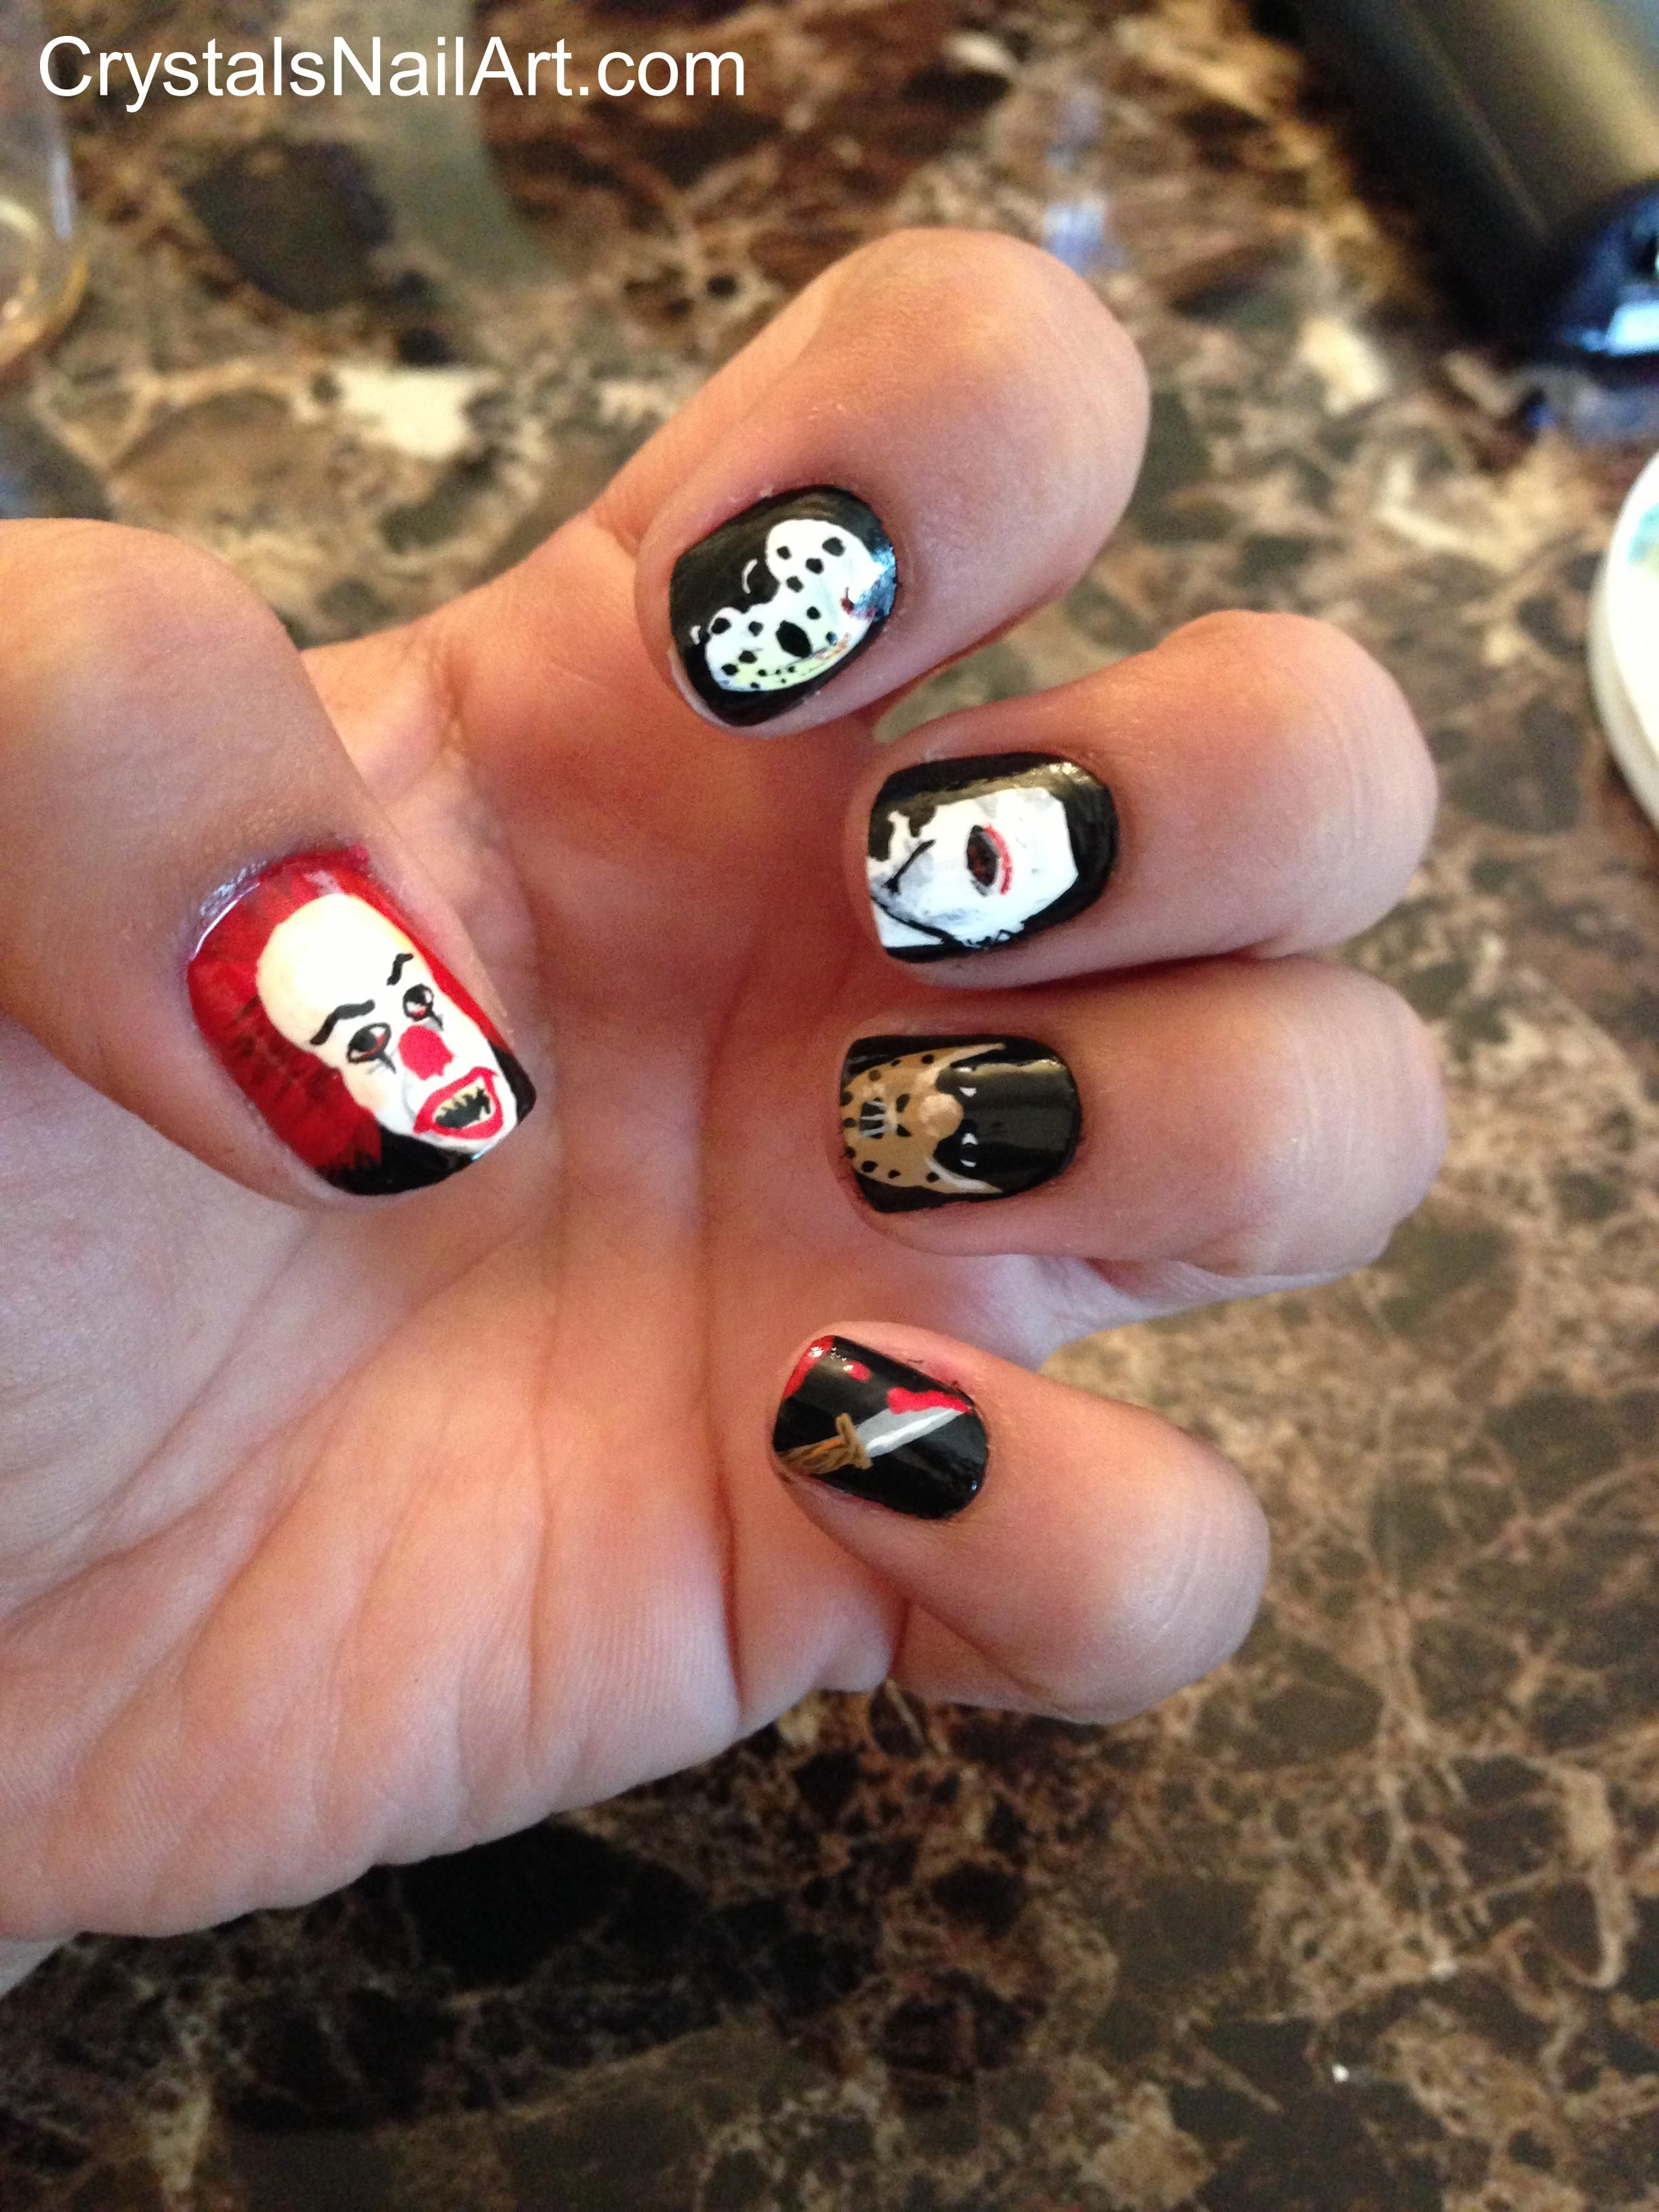 Nail Frightened art ideas for halloween exclusive photo